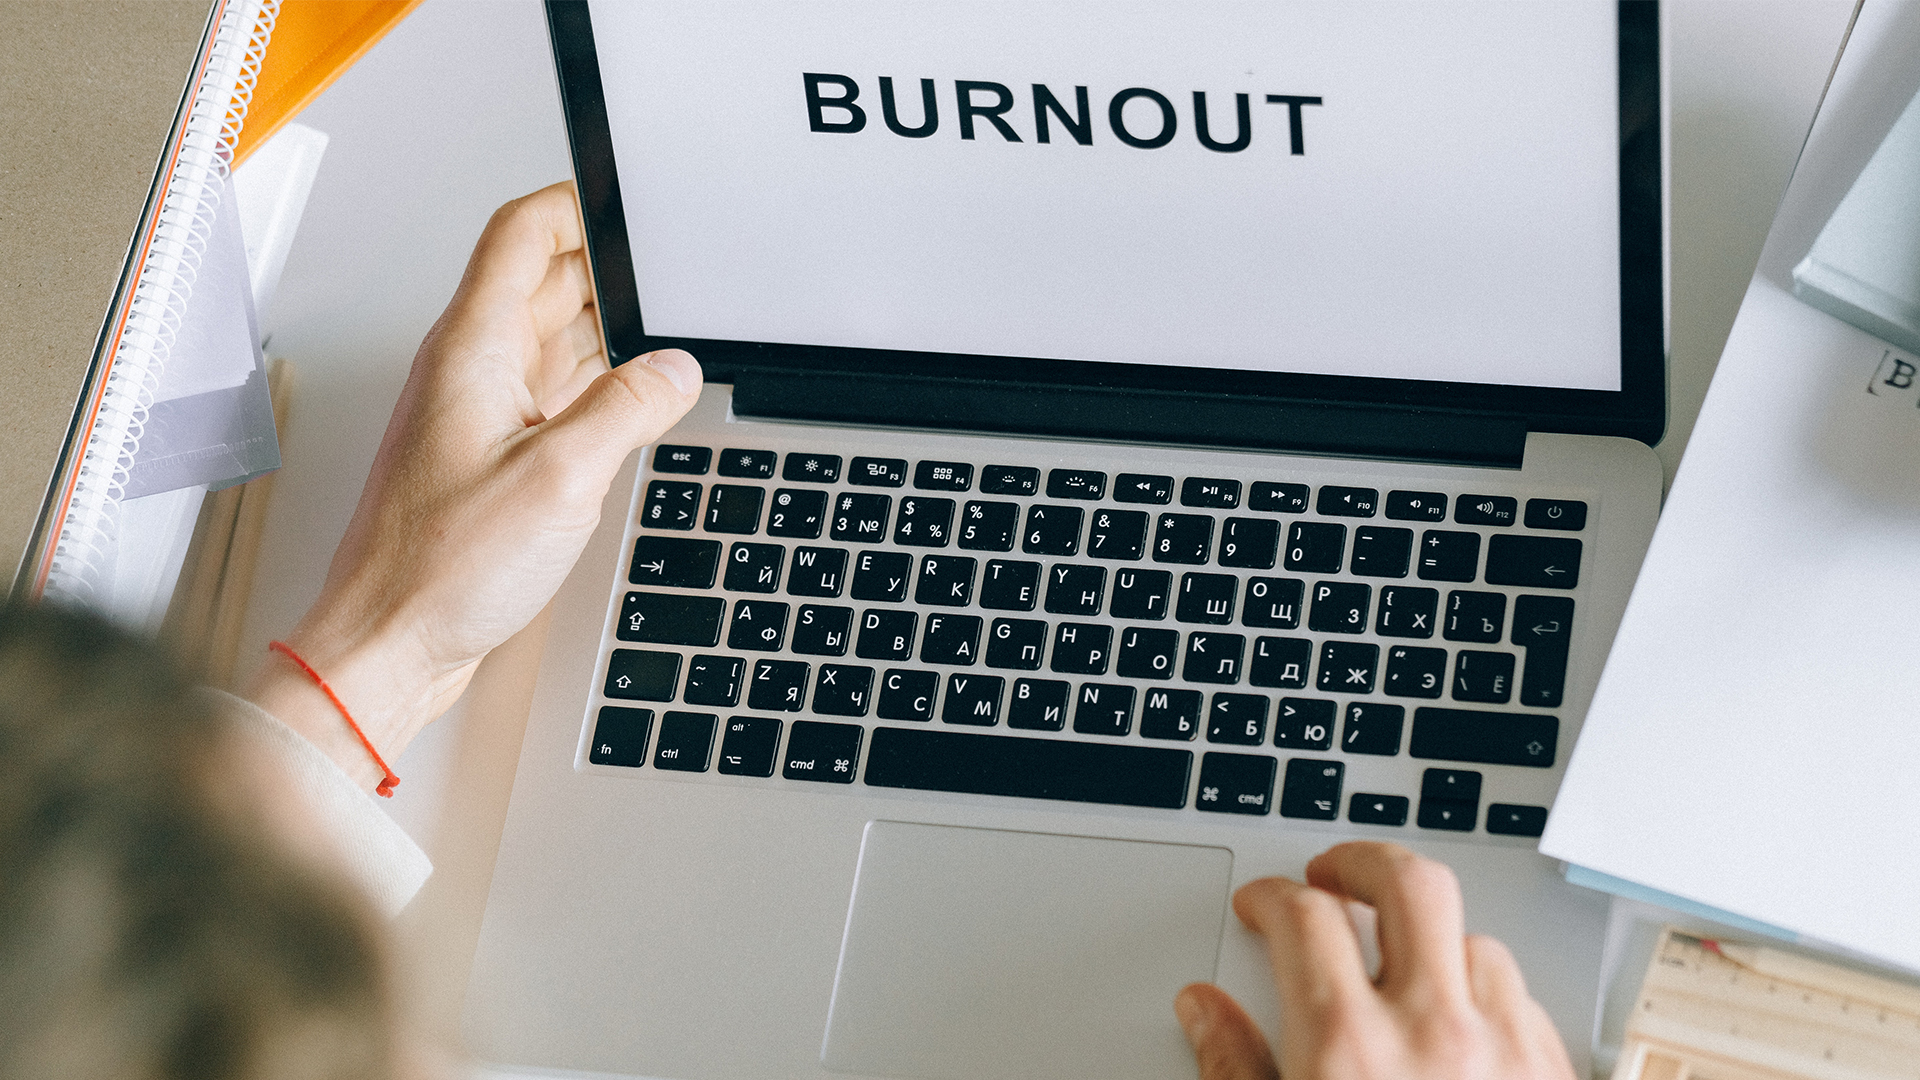 Employee burnout and career dissatisfaction a warning sign in remote-work trends